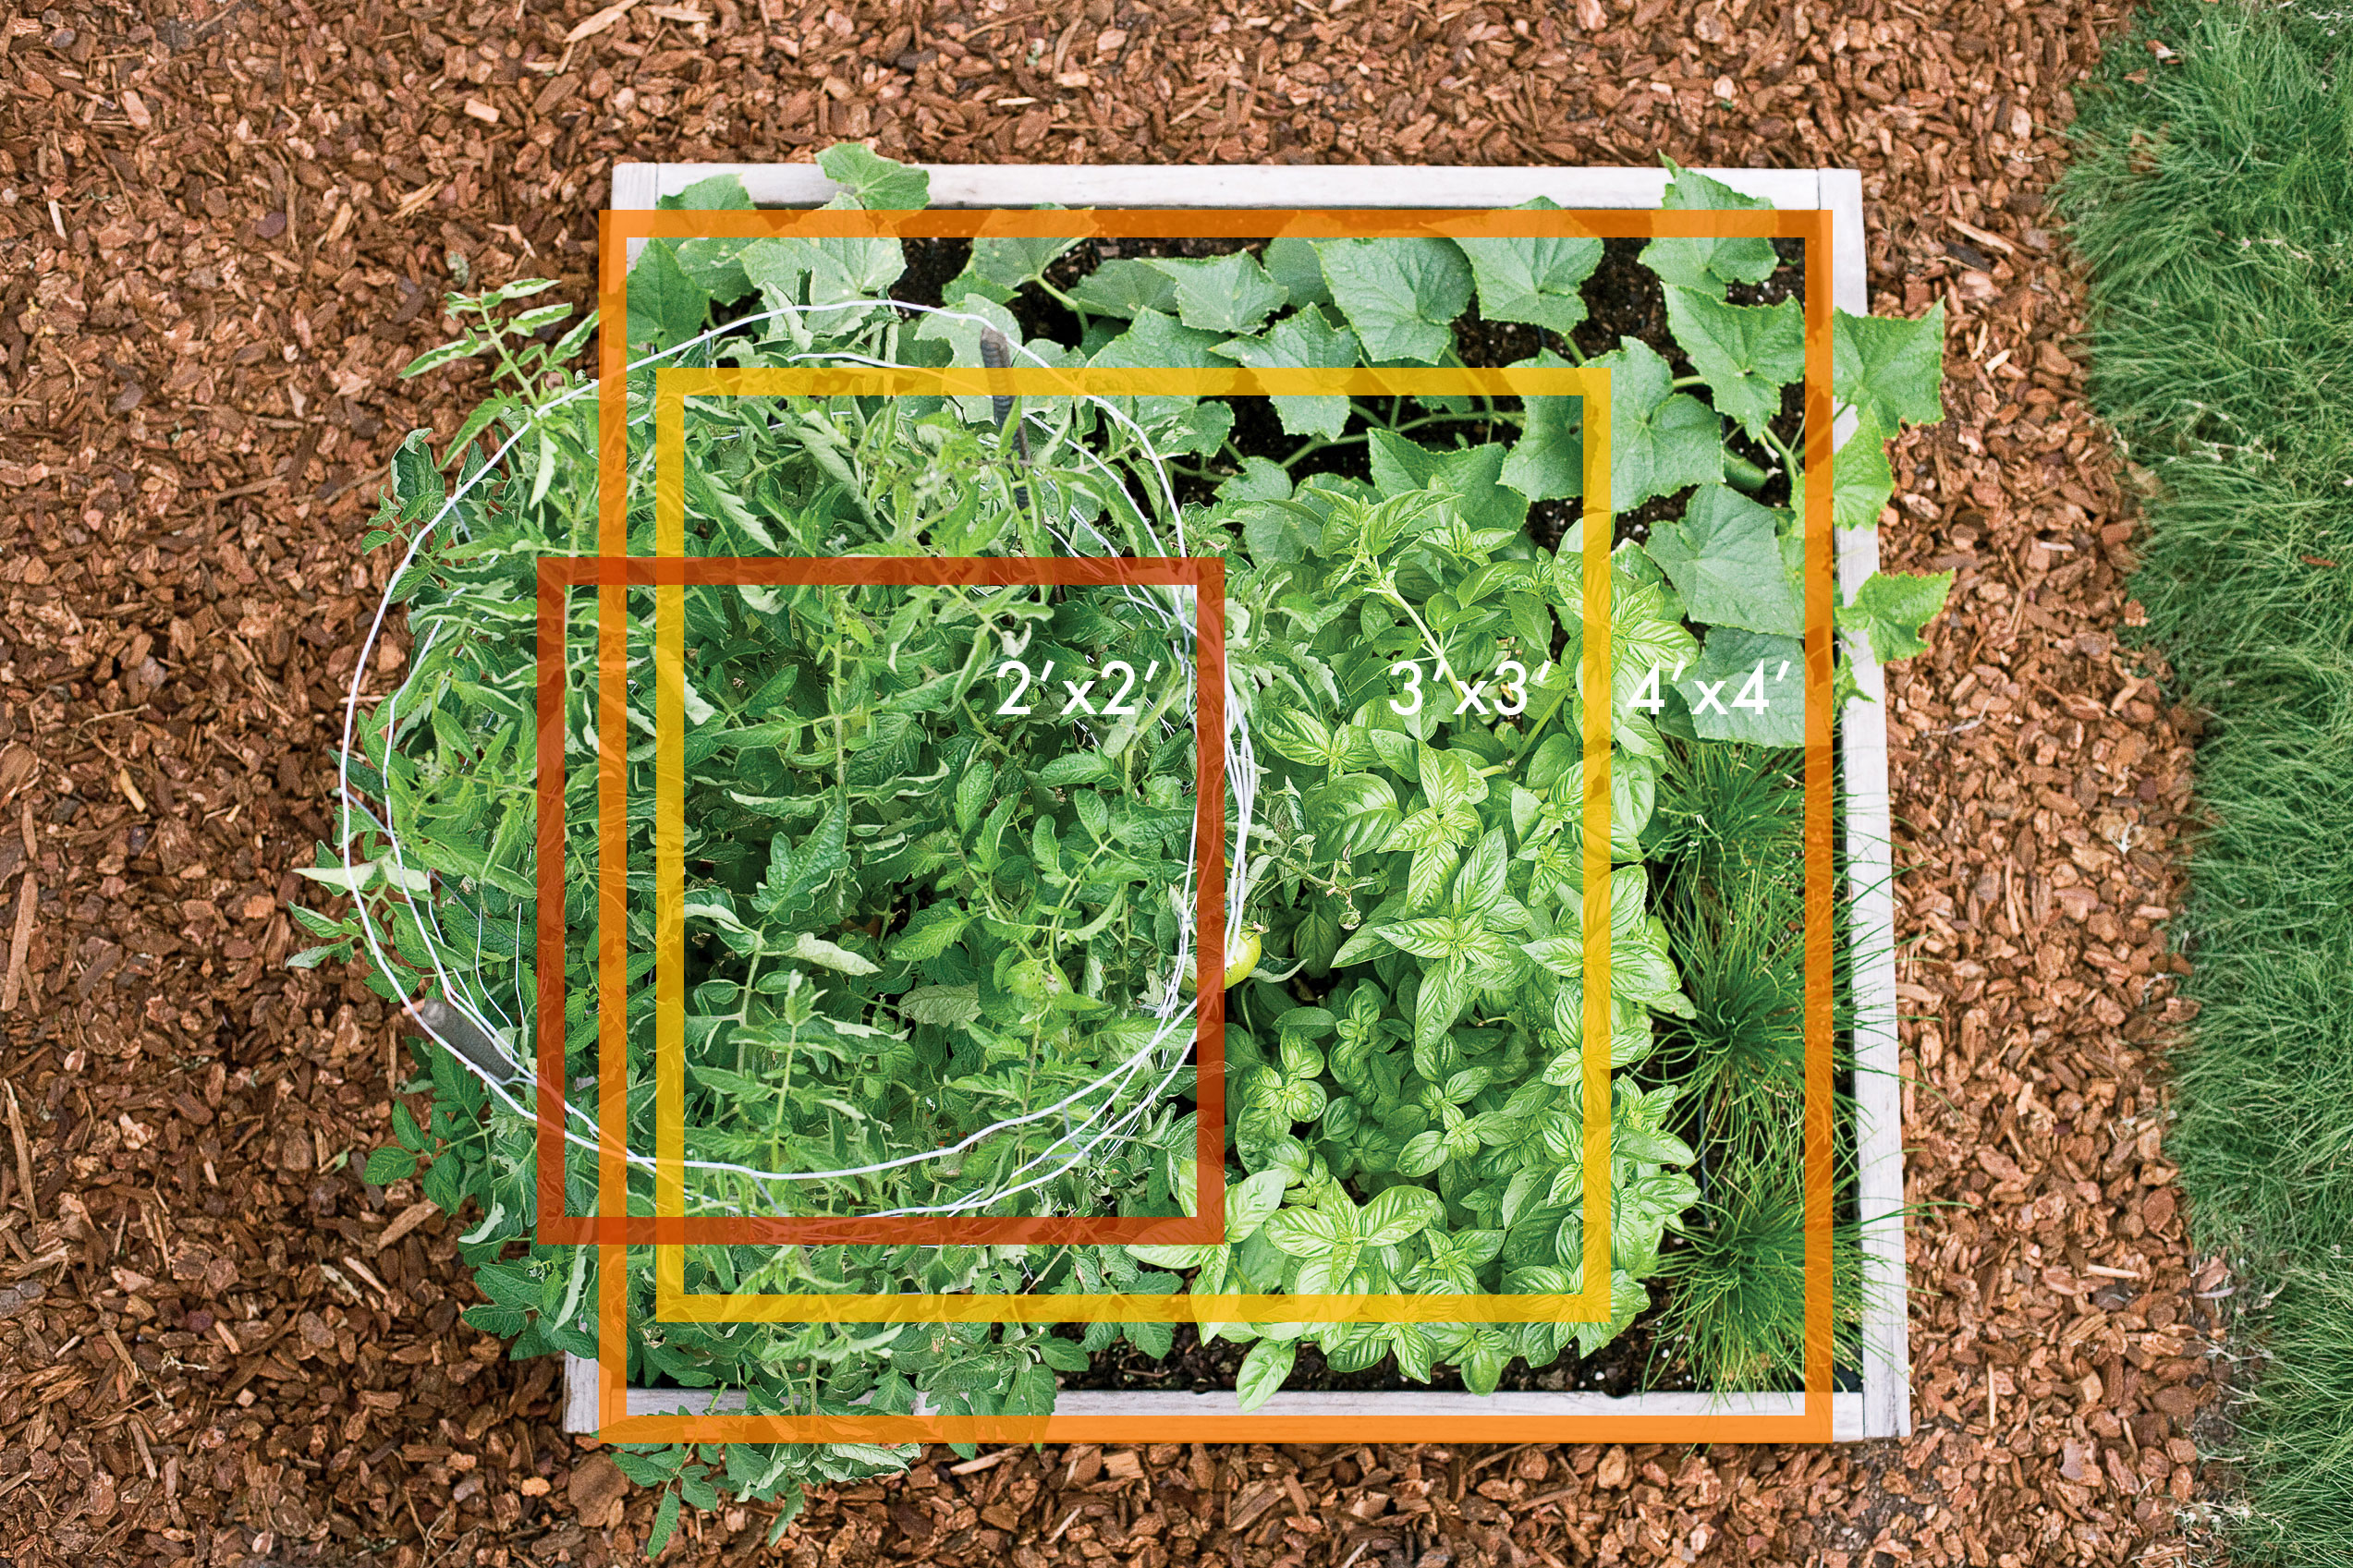 How to Grow Veggies in 2–4 Square Feet